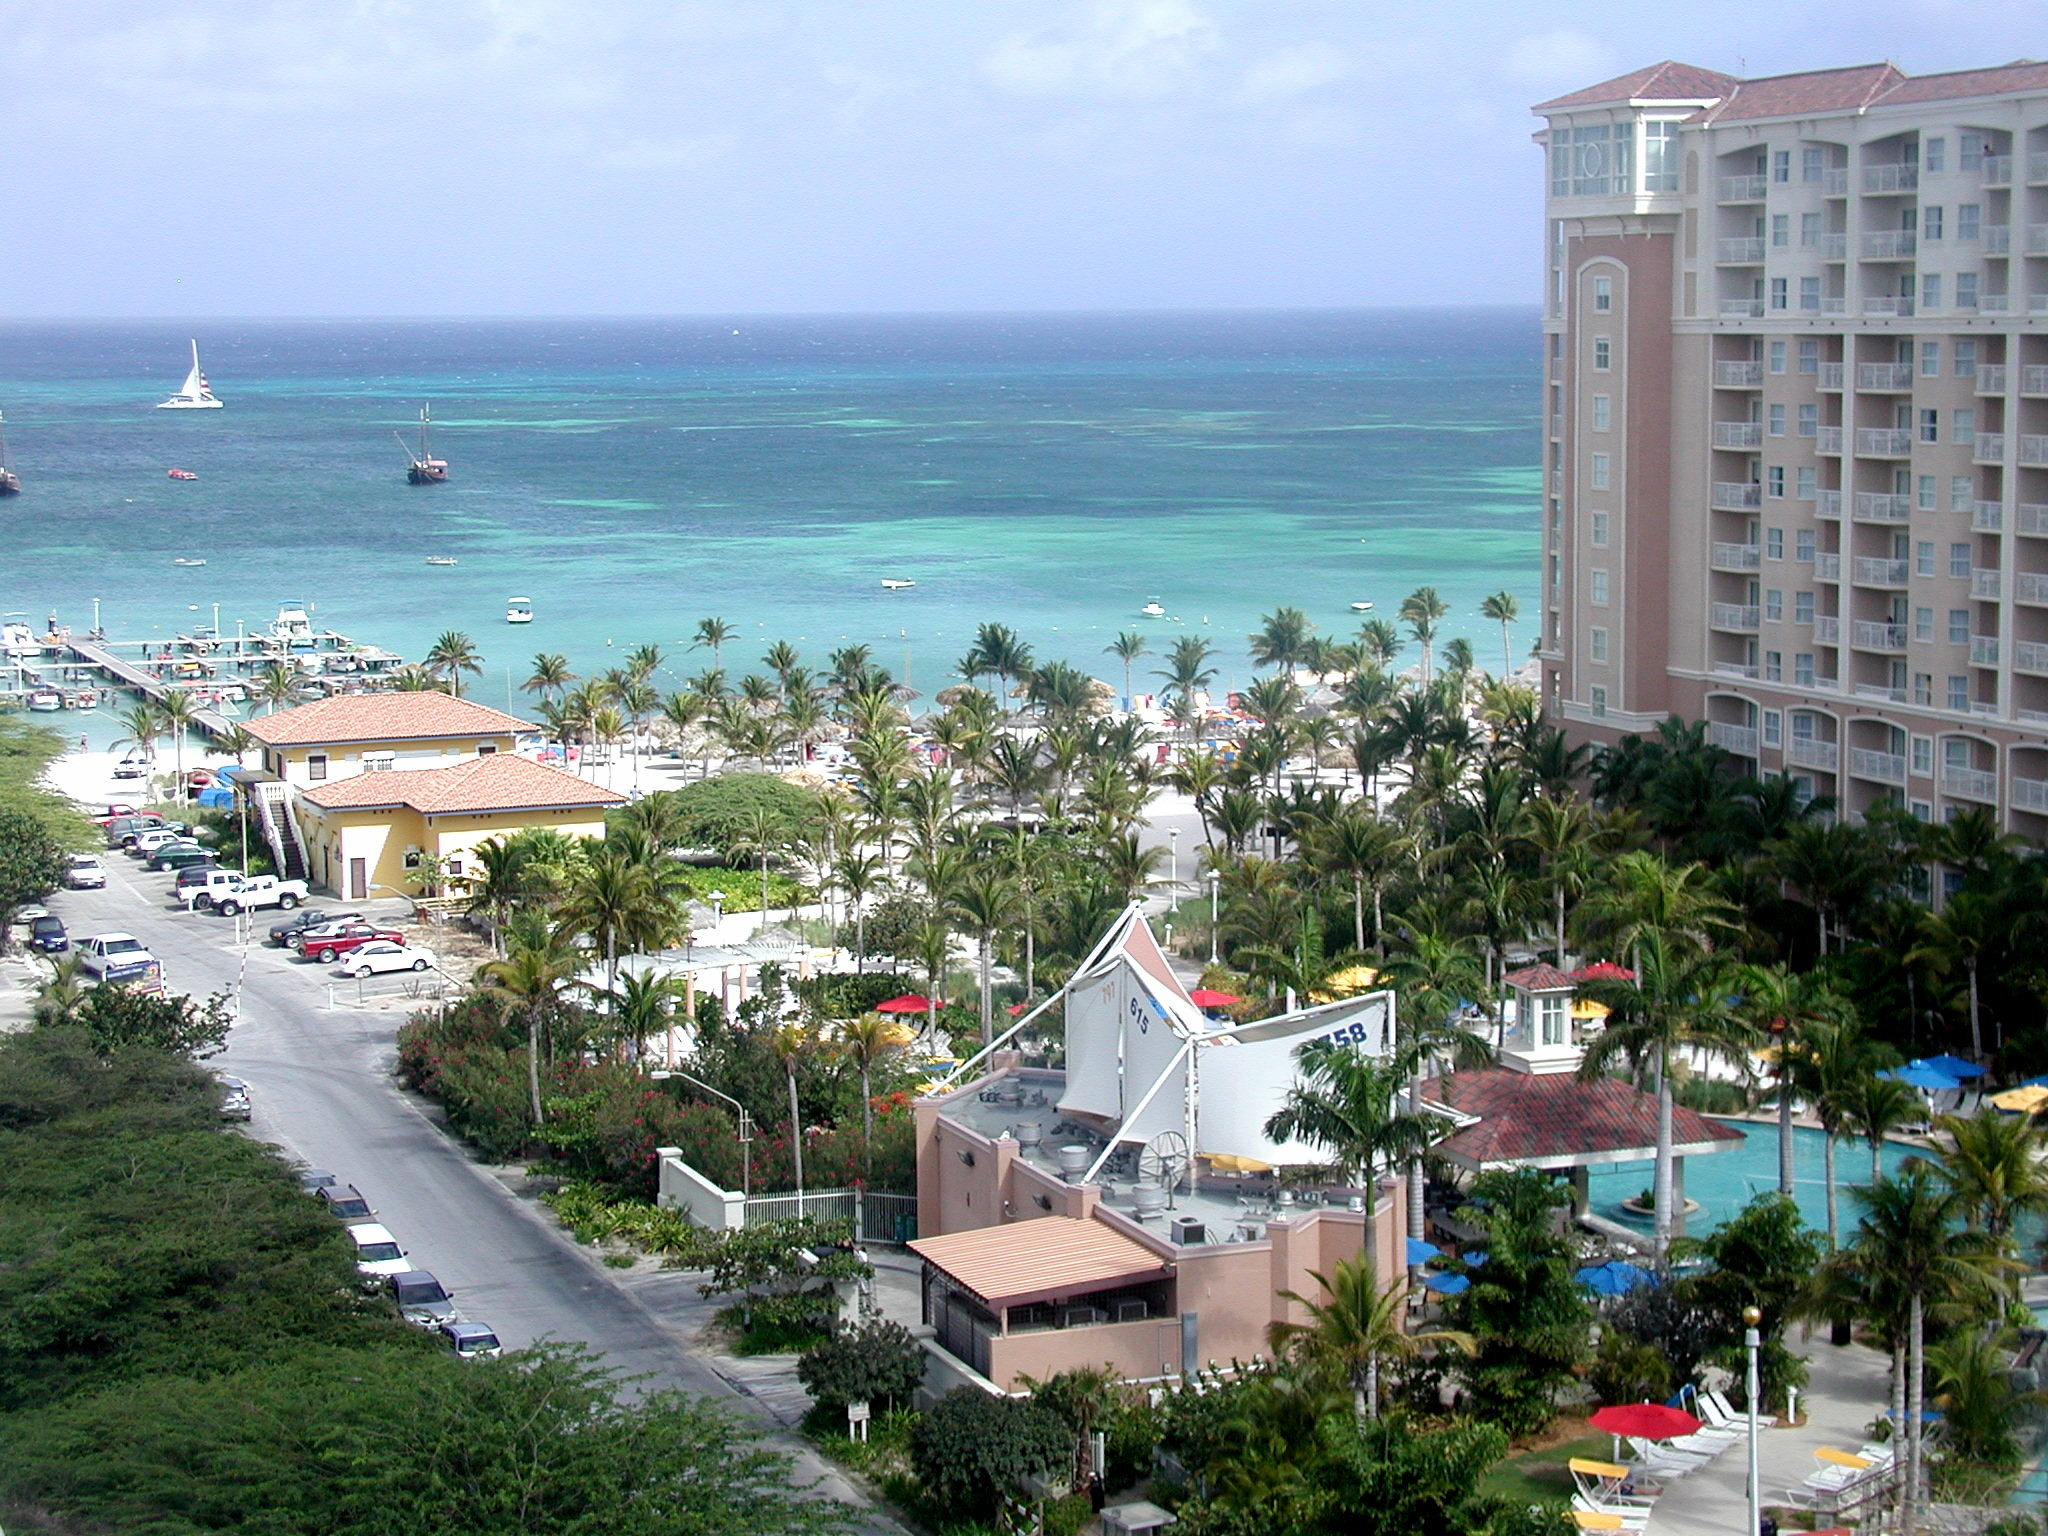 This is a shot from our Villa (balcony) looking (west)into the Caribbean